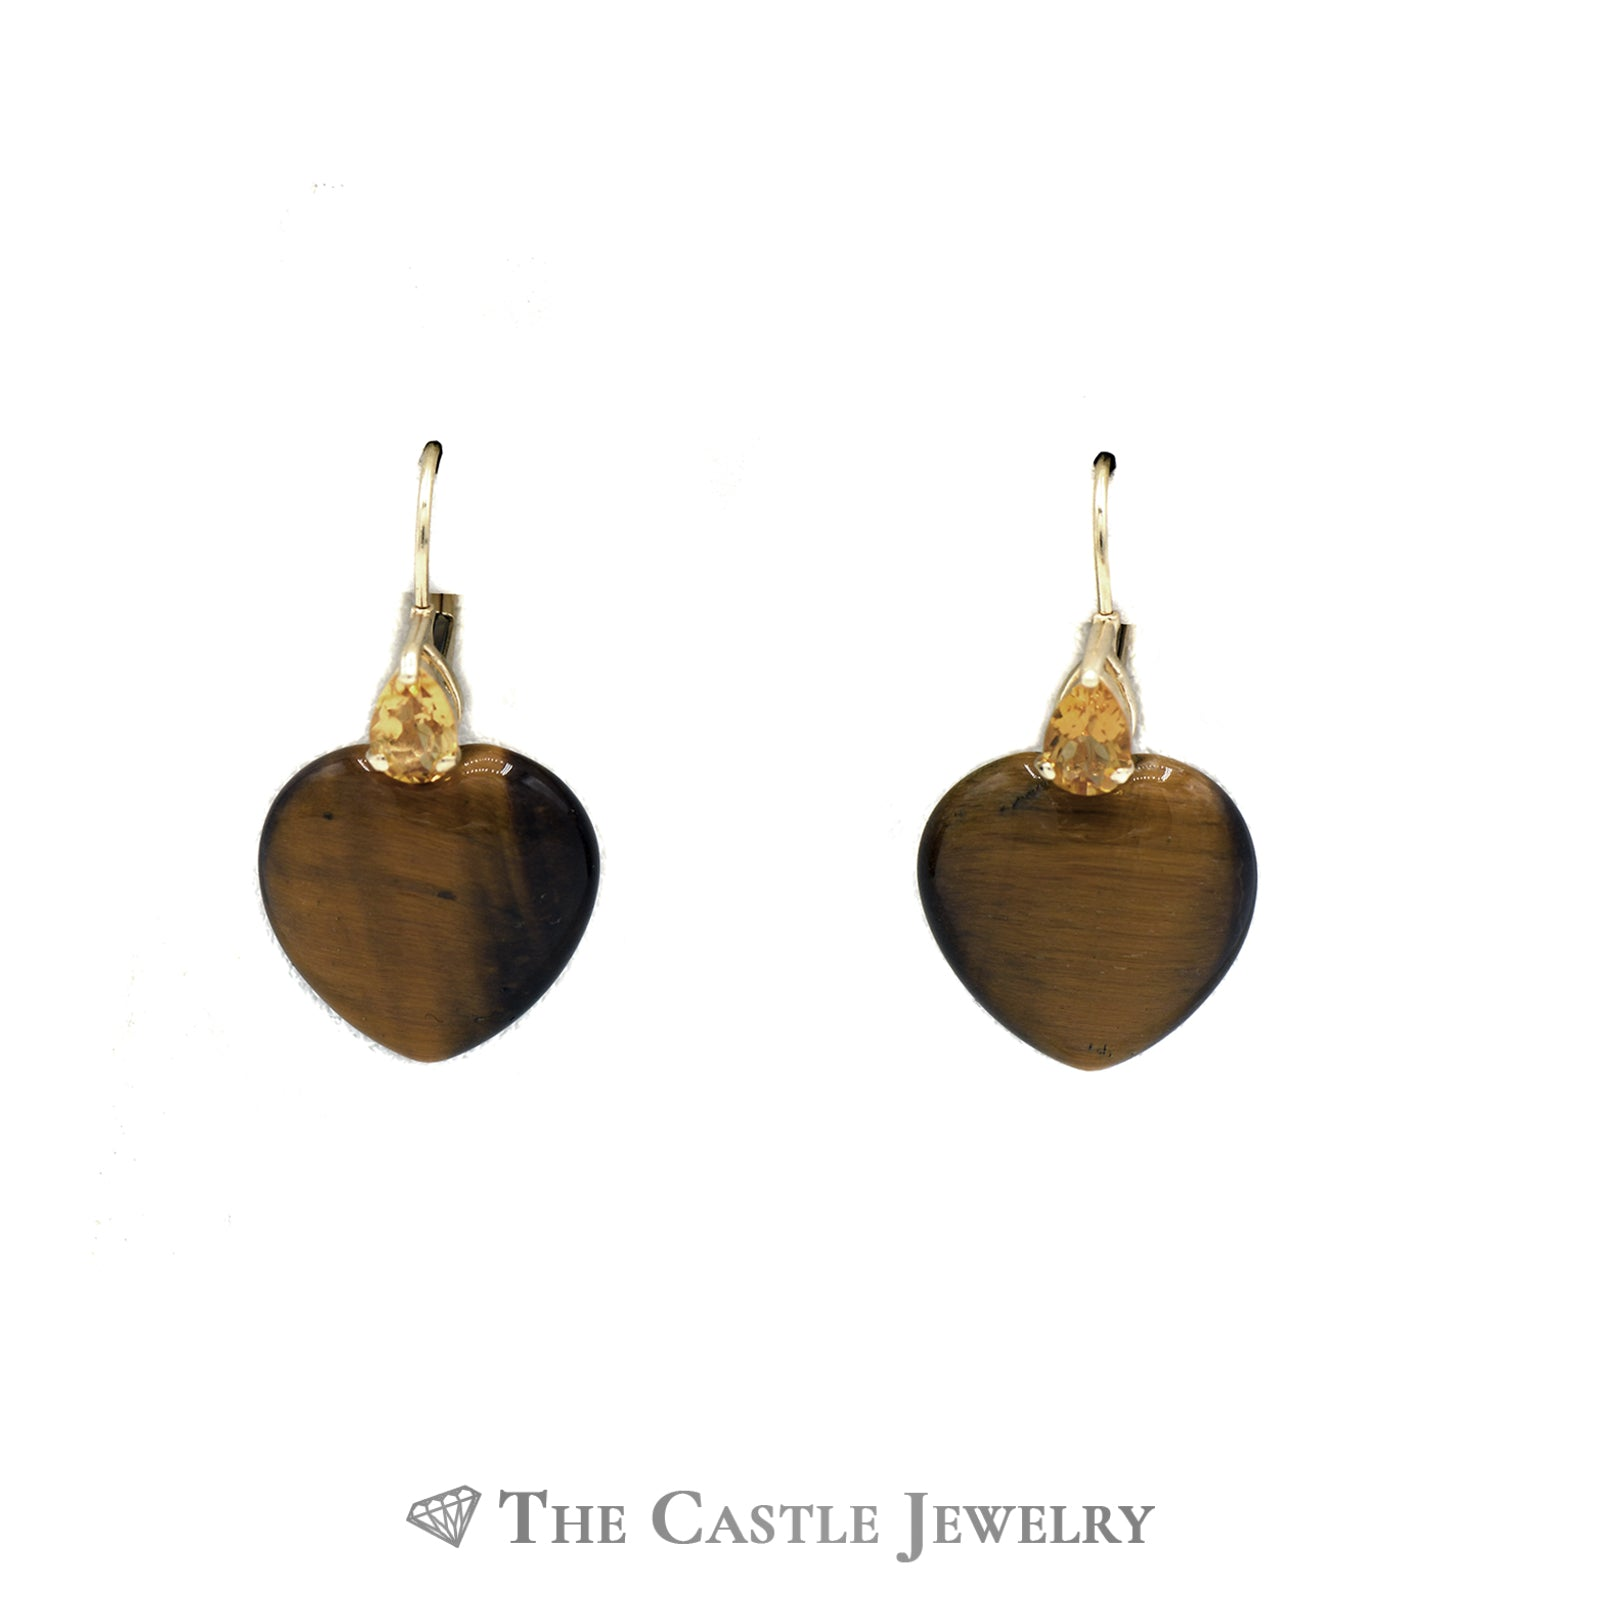 Tigers Eye Heart Earrings with Citrine Accents in 14K Yellow Gold